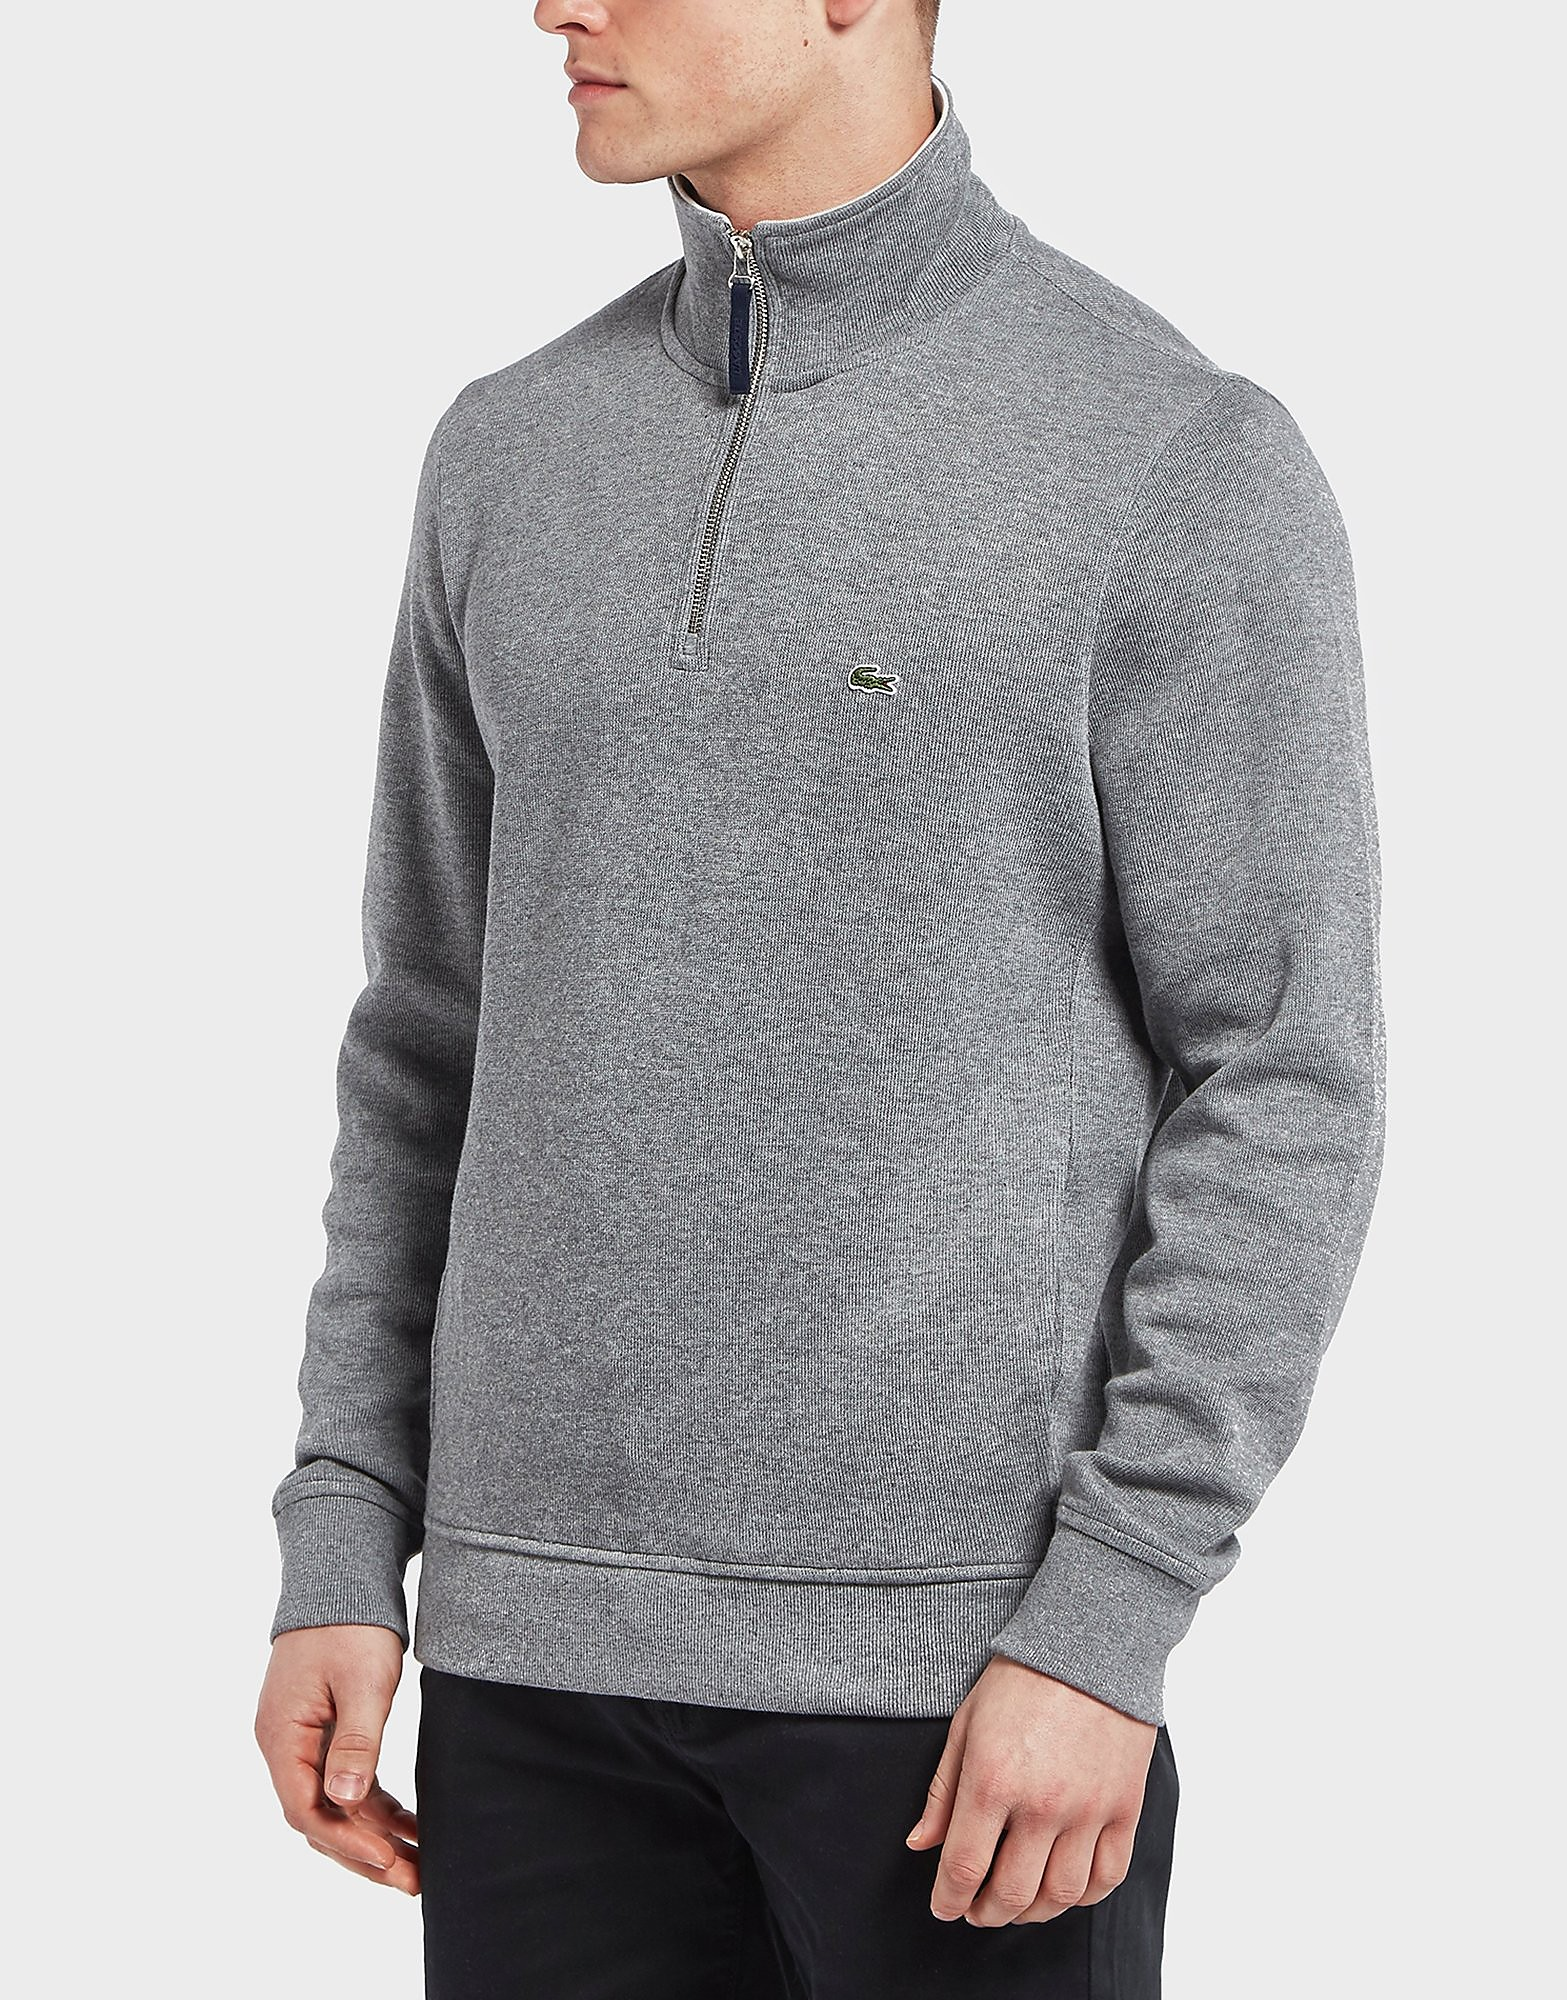 Lacoste Rib Interlock Half Zip Sweatshirt